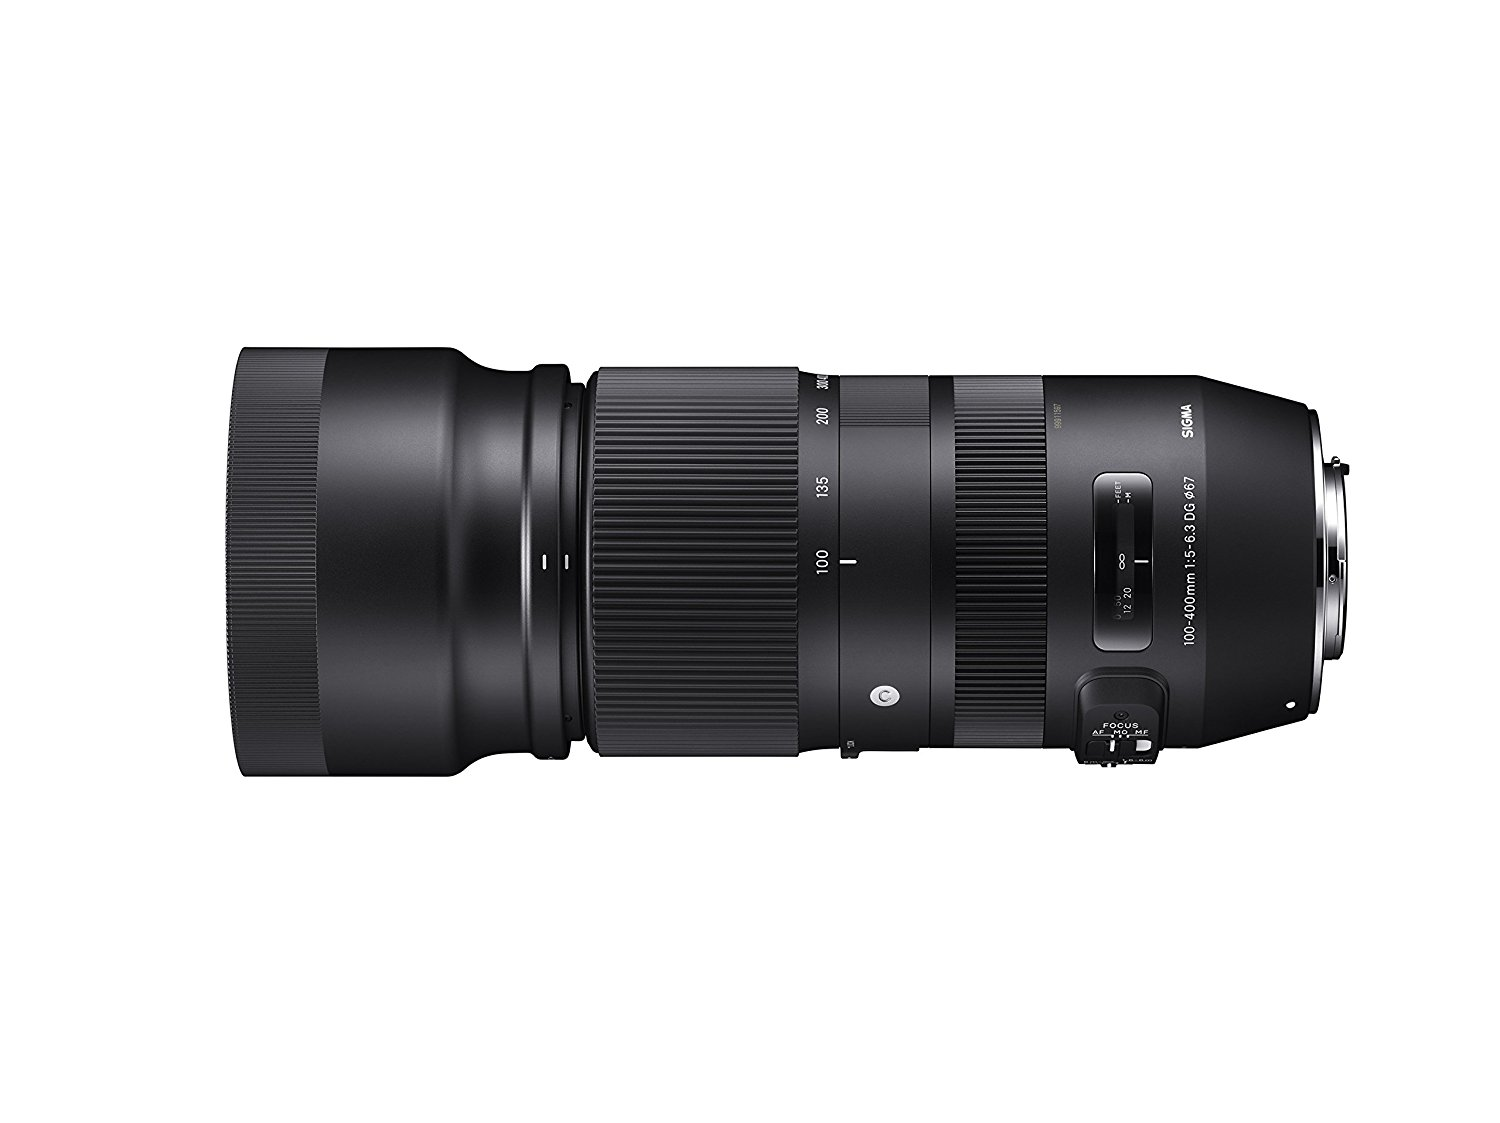 Sigma 100-400mm f/5-6.3 DG OS Contemporary for Canon for sale